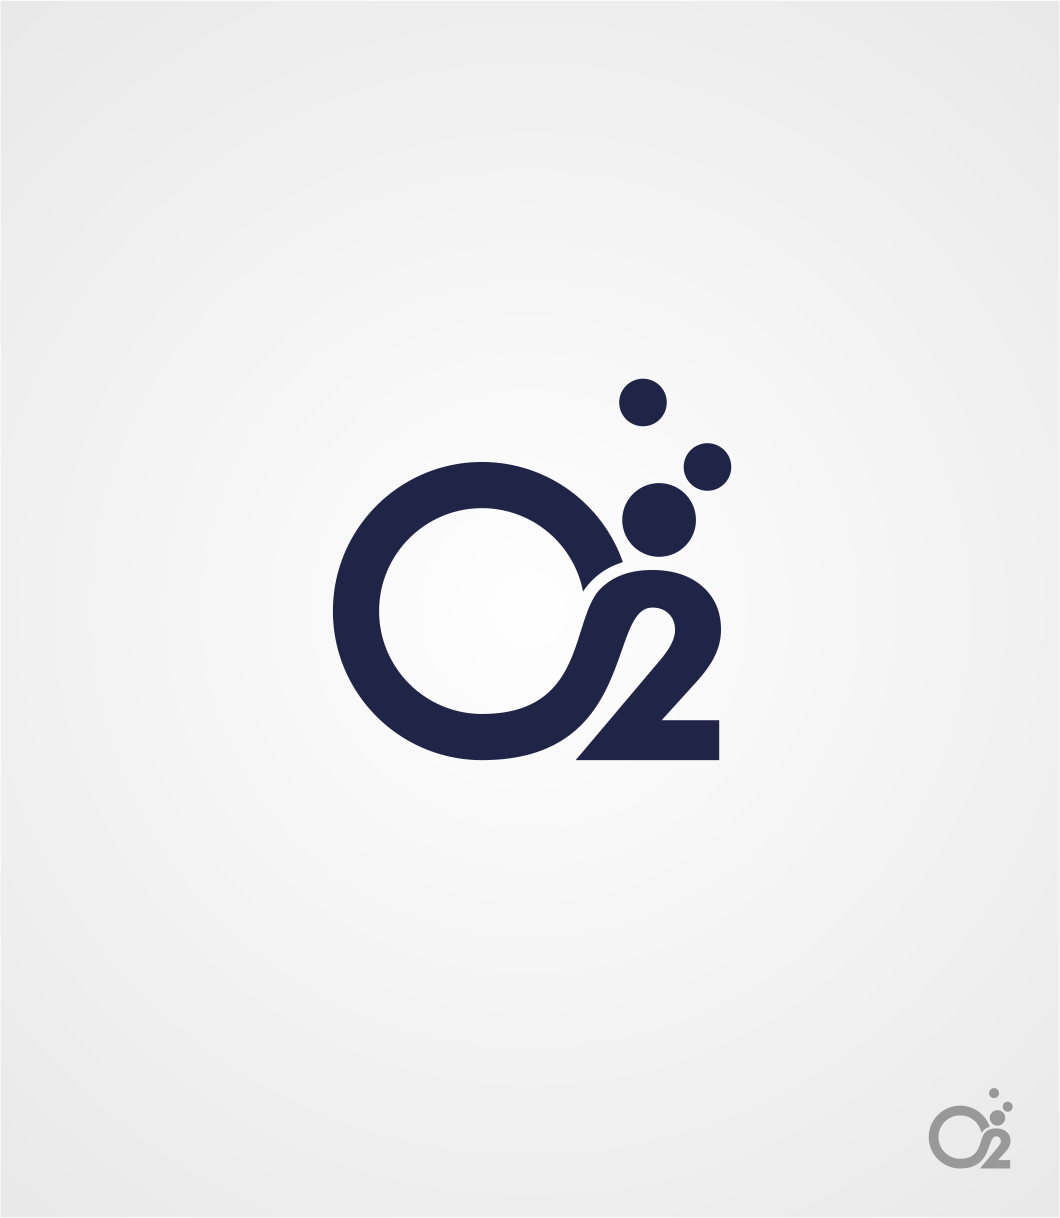 Logo Design by Private User - Entry No. 28 in the Logo Design Contest Artistic Logo Design for O2.